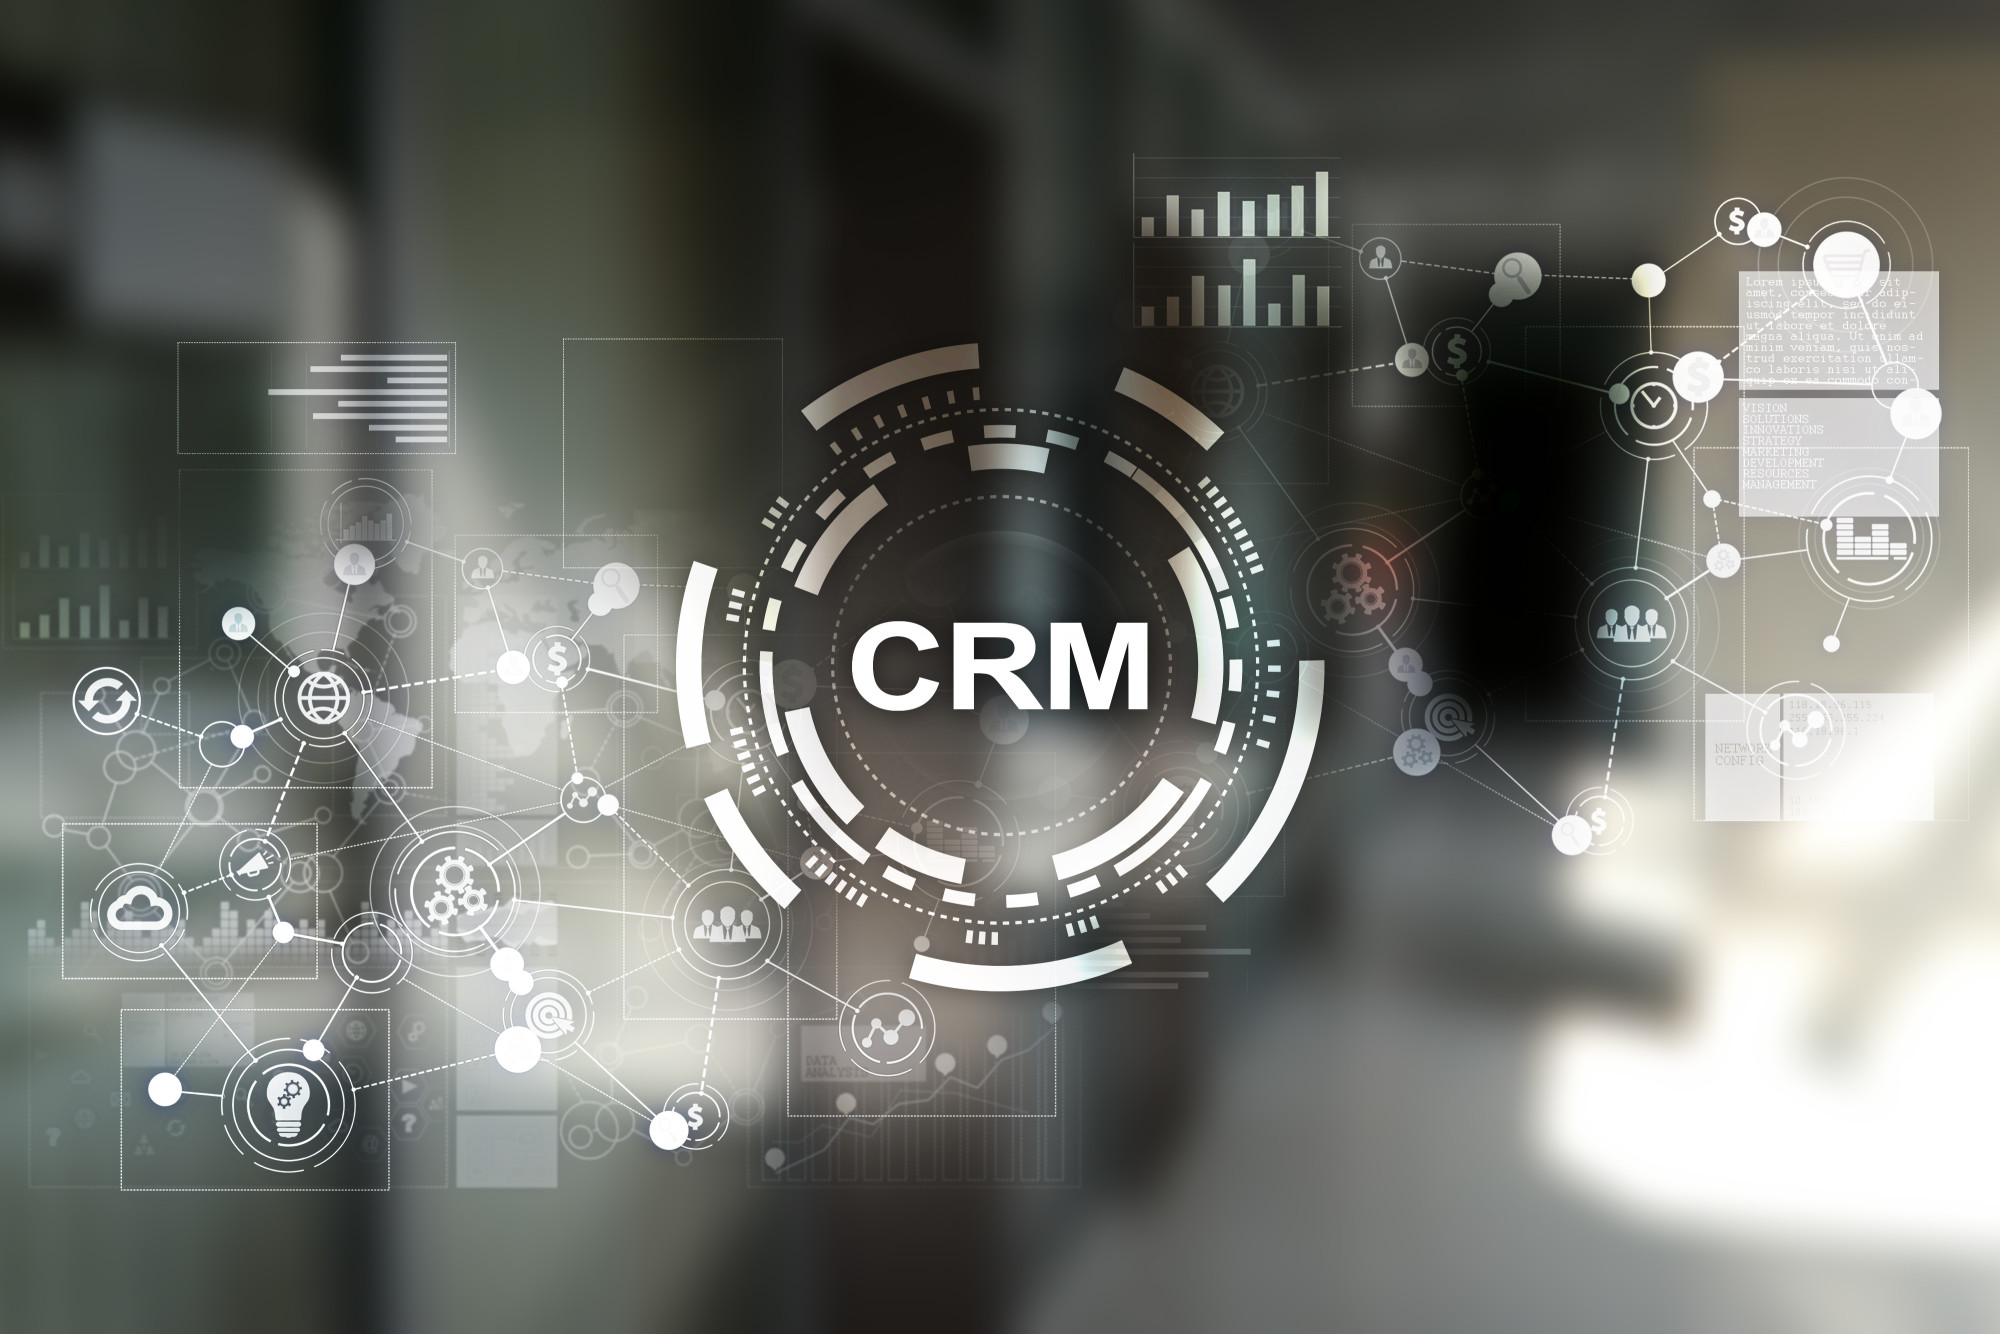 7 Key Features Every CRM Software for Small Business Should Have